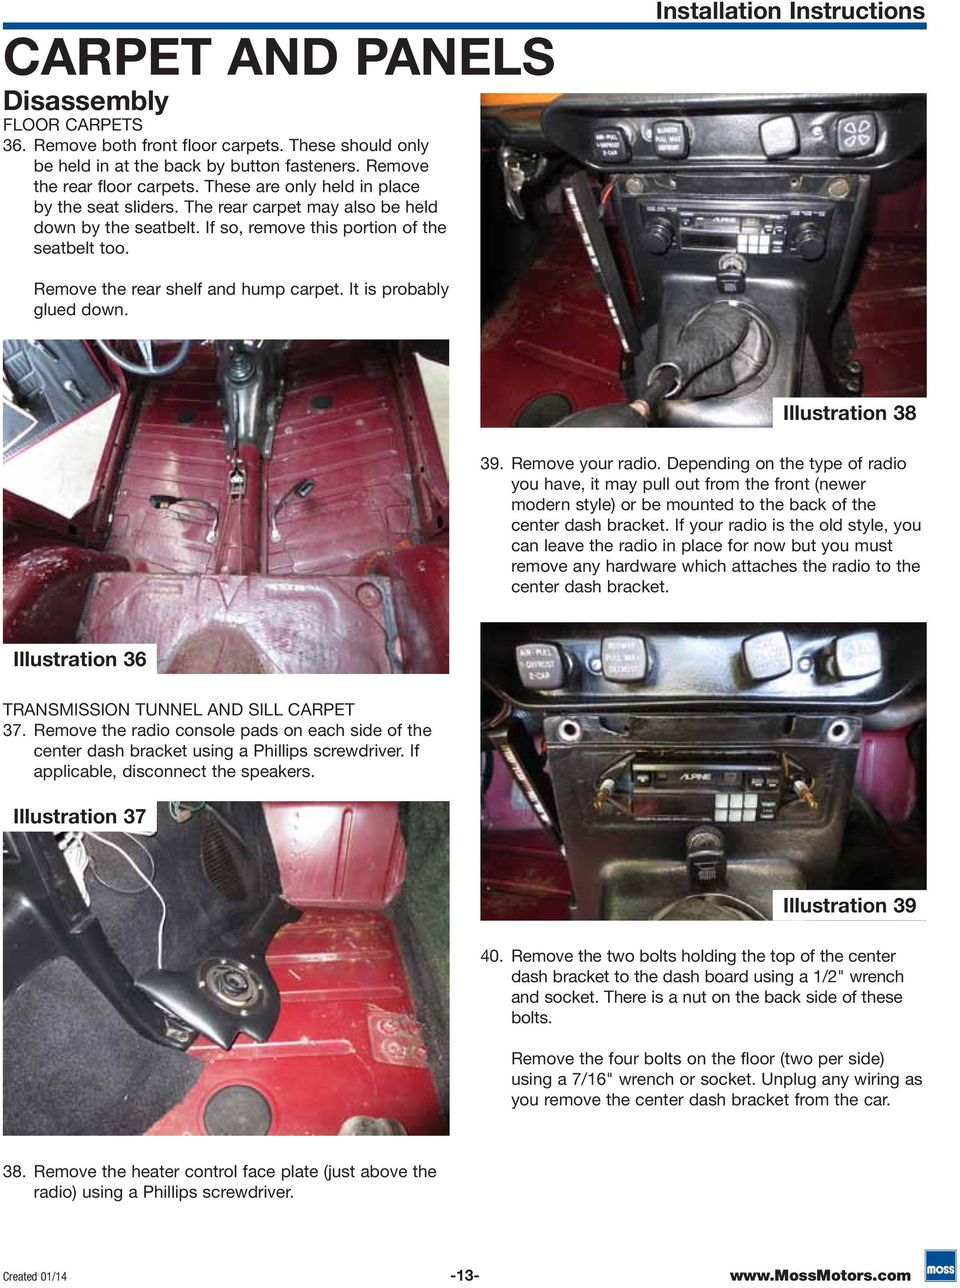 Tr6 Interior Installation Guide Pdf Fiero Headrest Speakers Wiring Diagram Car Pictures Instructions Remove The Rear Shelf And Hump Carpet It Is Probably Glued Down